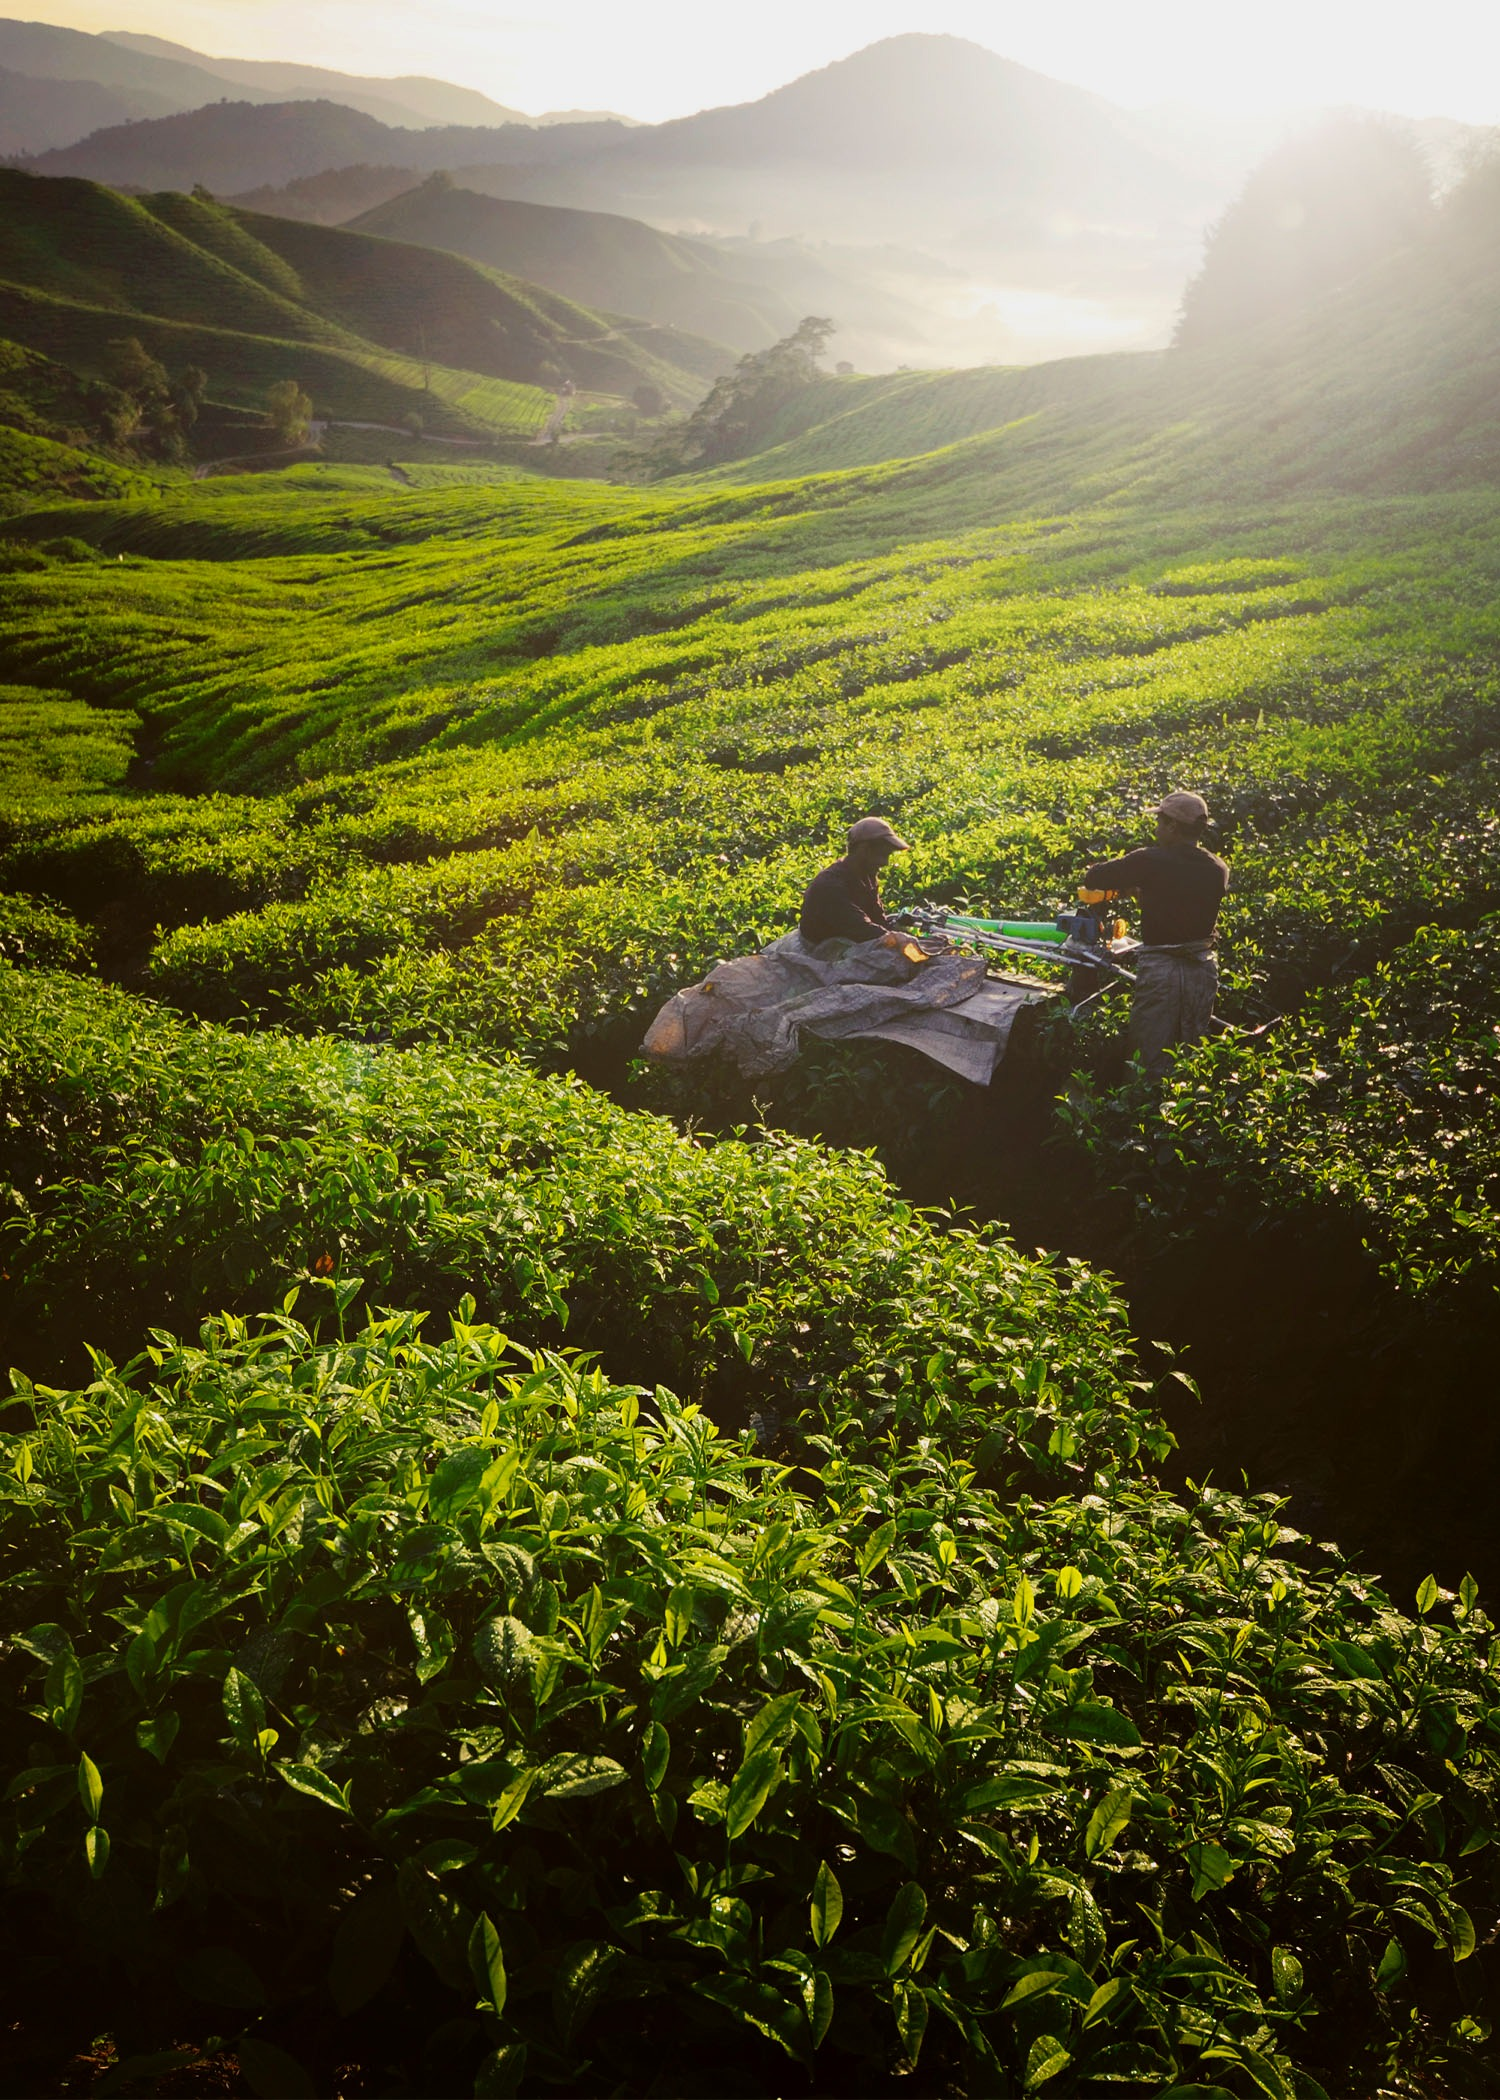 Tea Pickers_edited.jpg